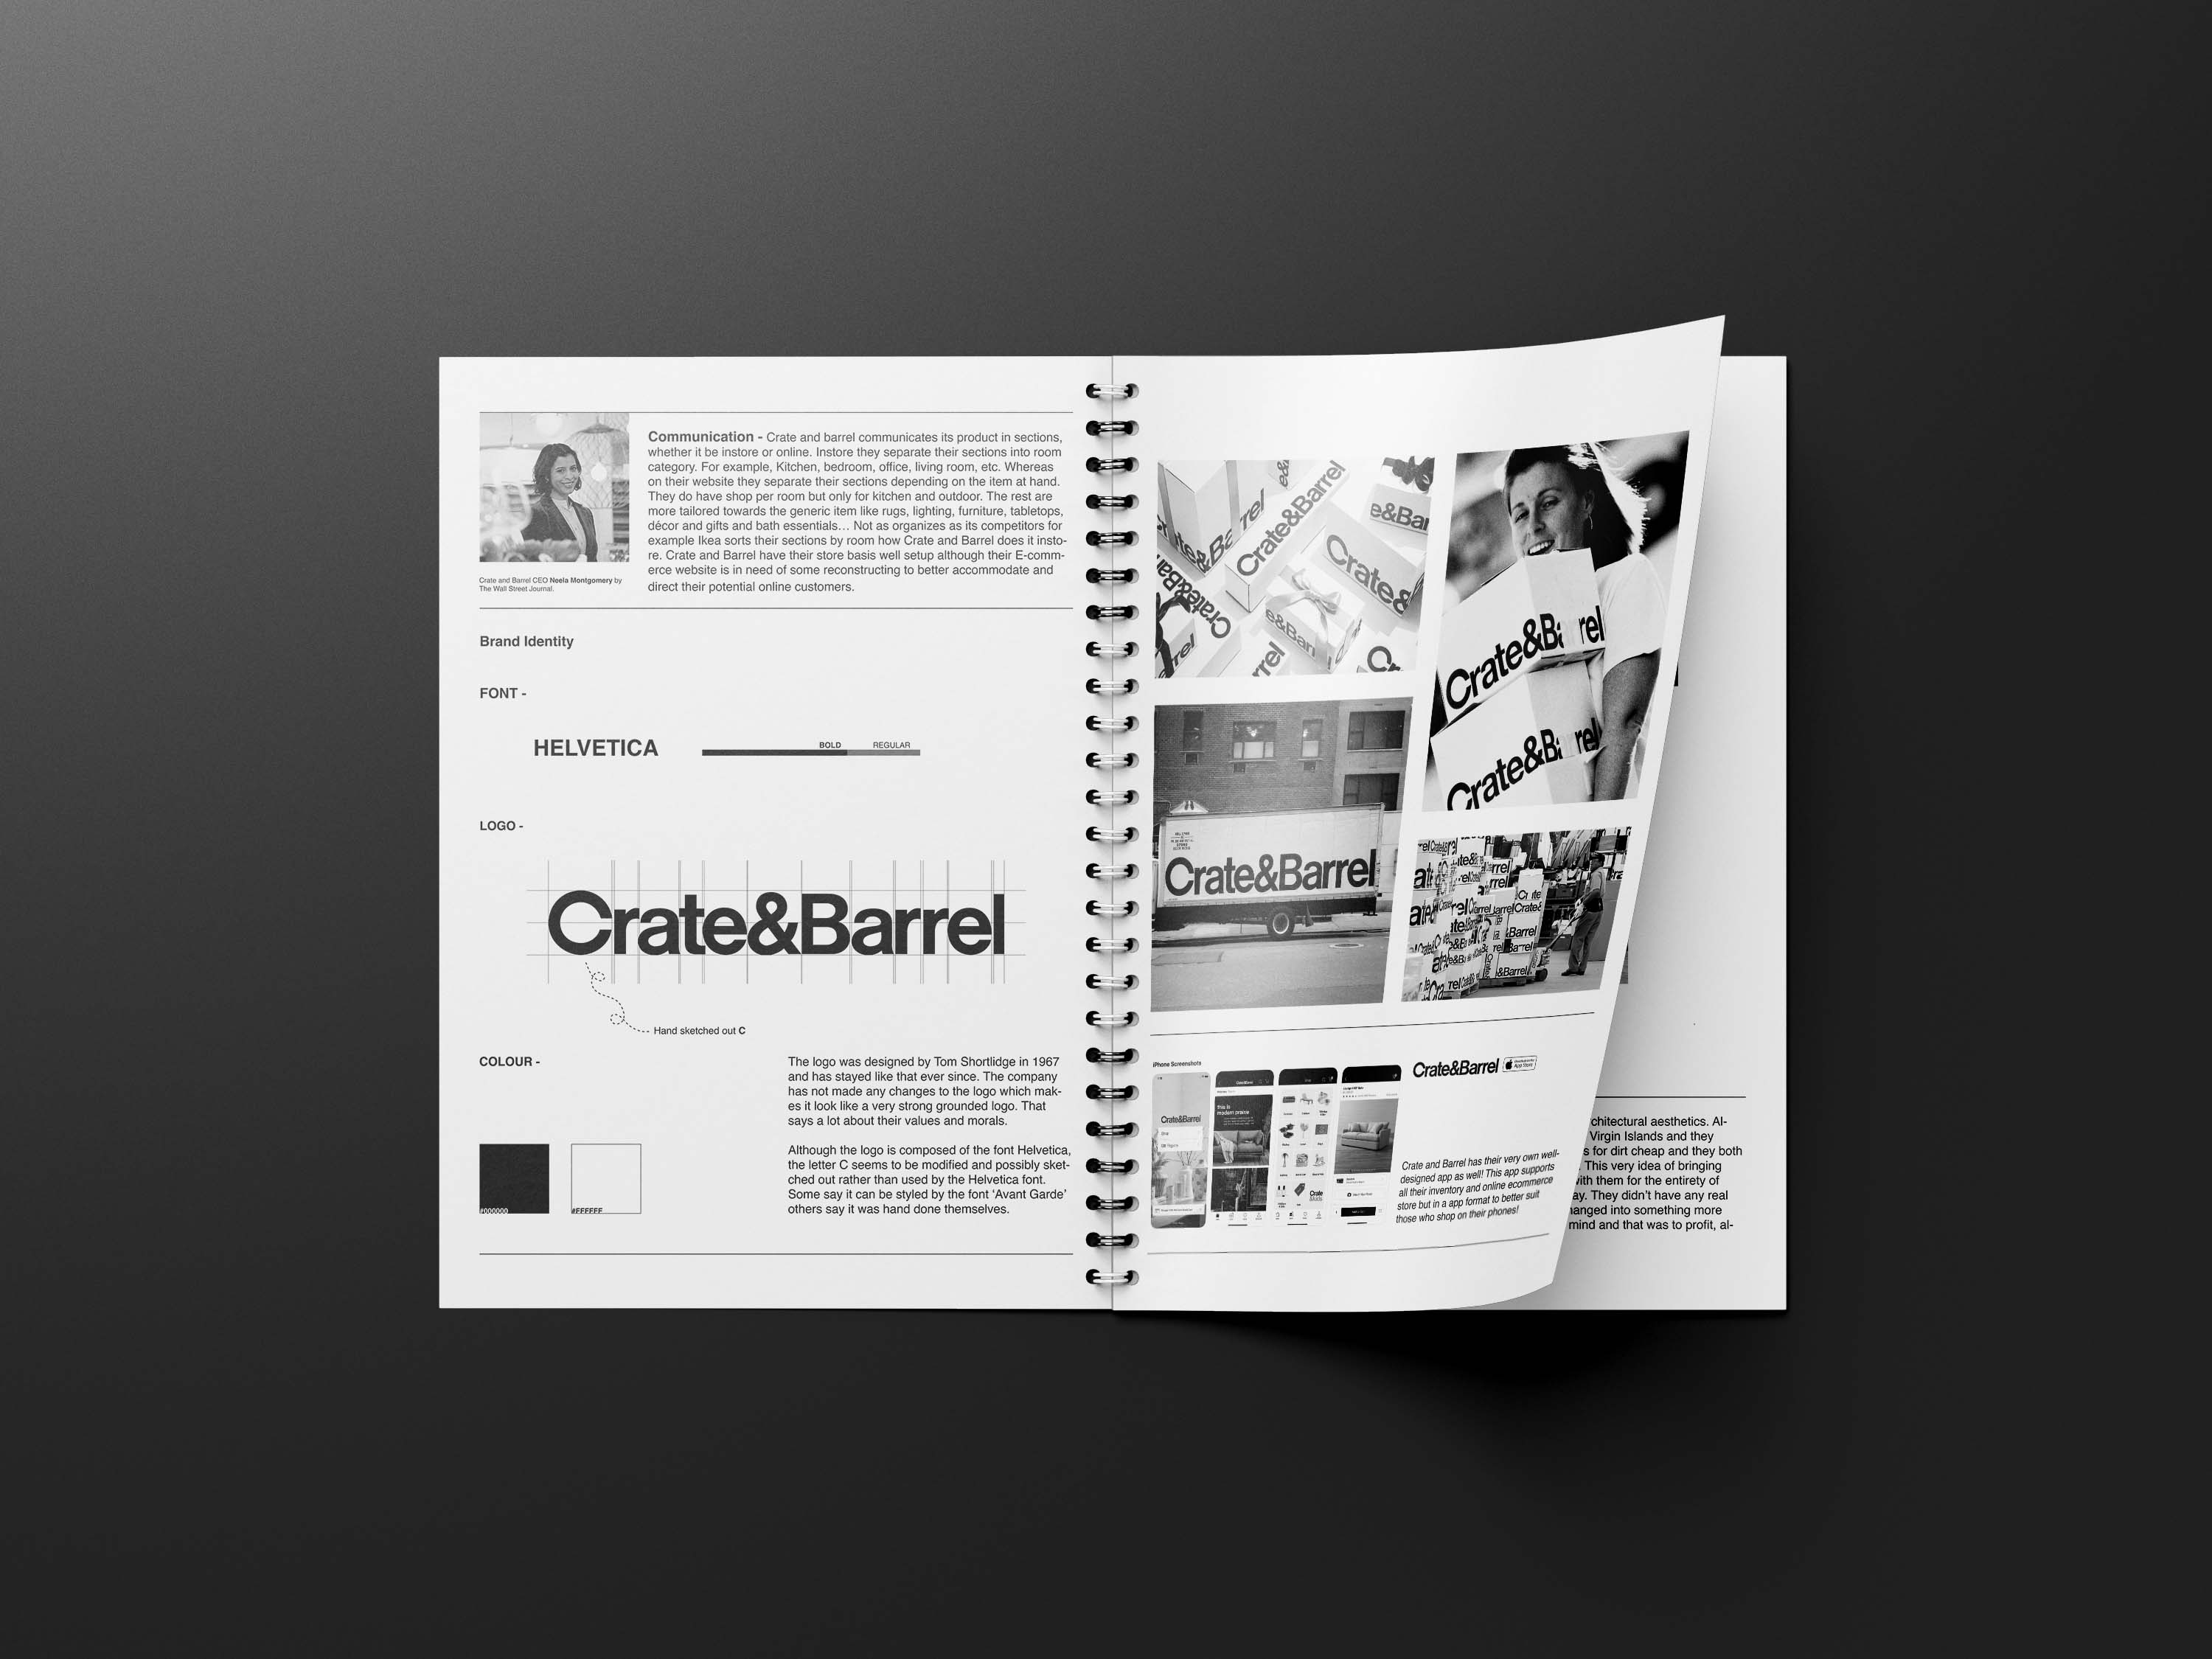 Crate&Barrel Booklet Analysis